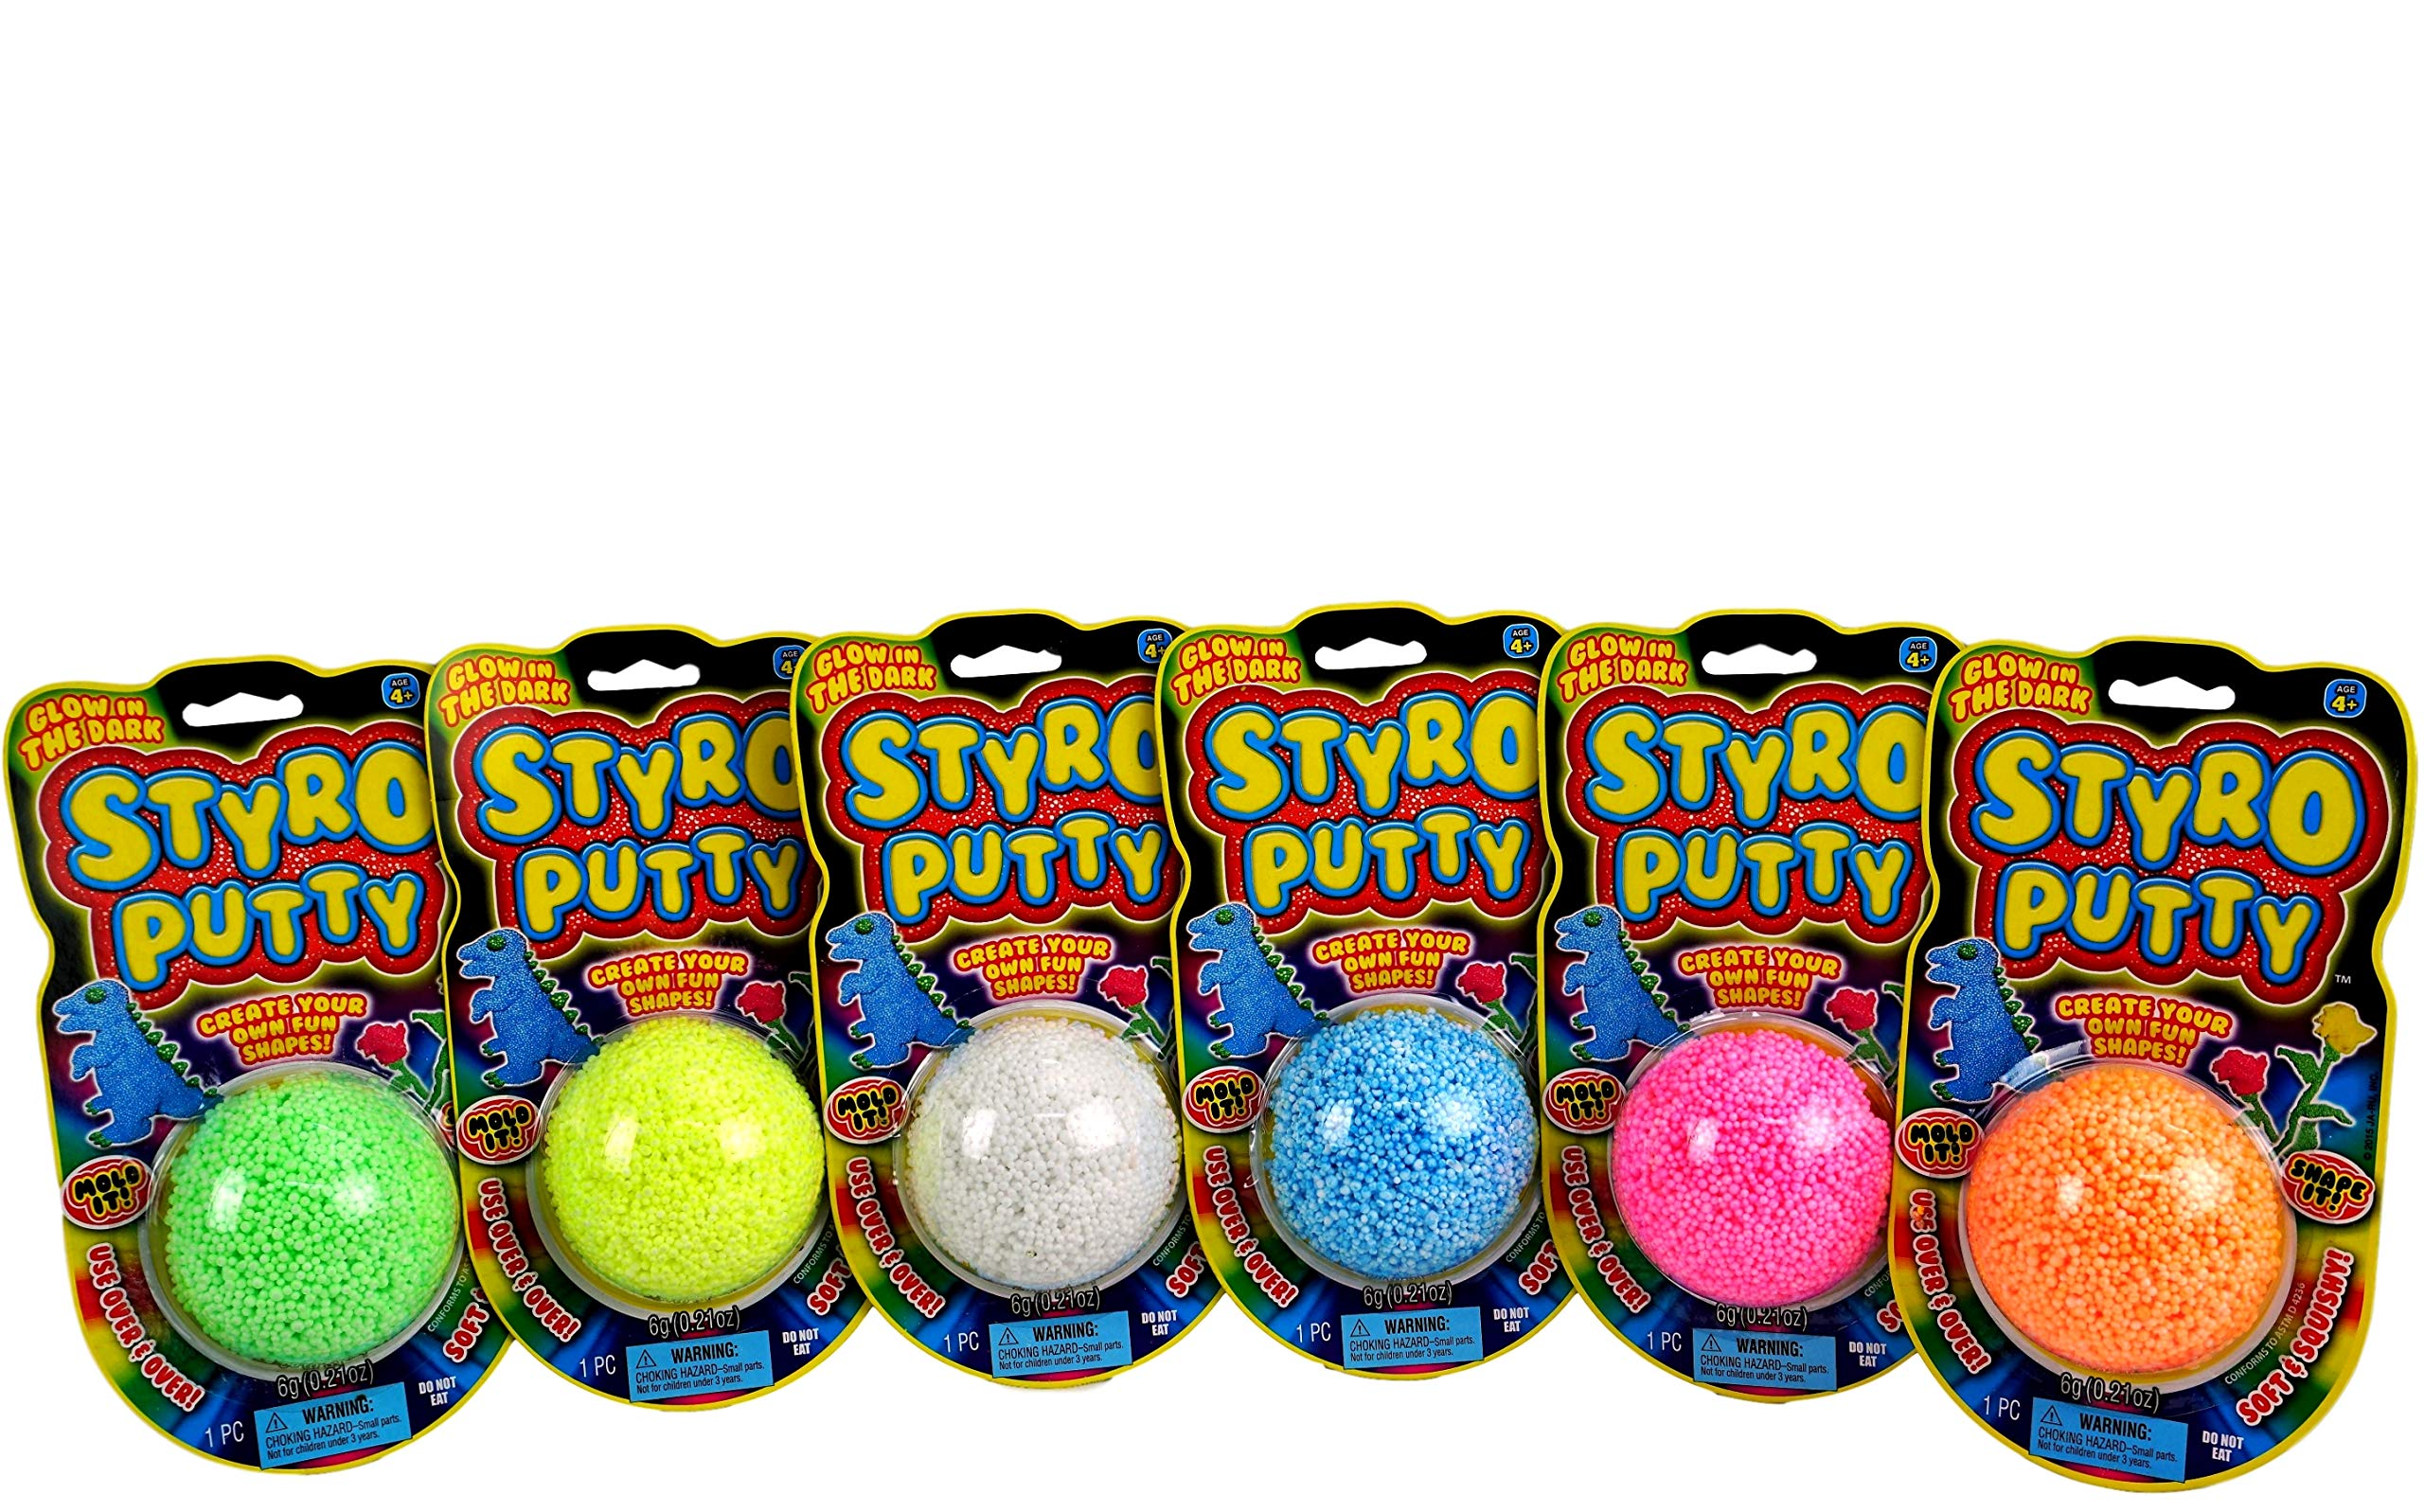 JA-RU STYRO Putty Foam Glows in The Dark (Pack of 144) Styrofoam Shapable Mold Soft and Squishy | Item #1328-144 by JA-RU (Image #2)